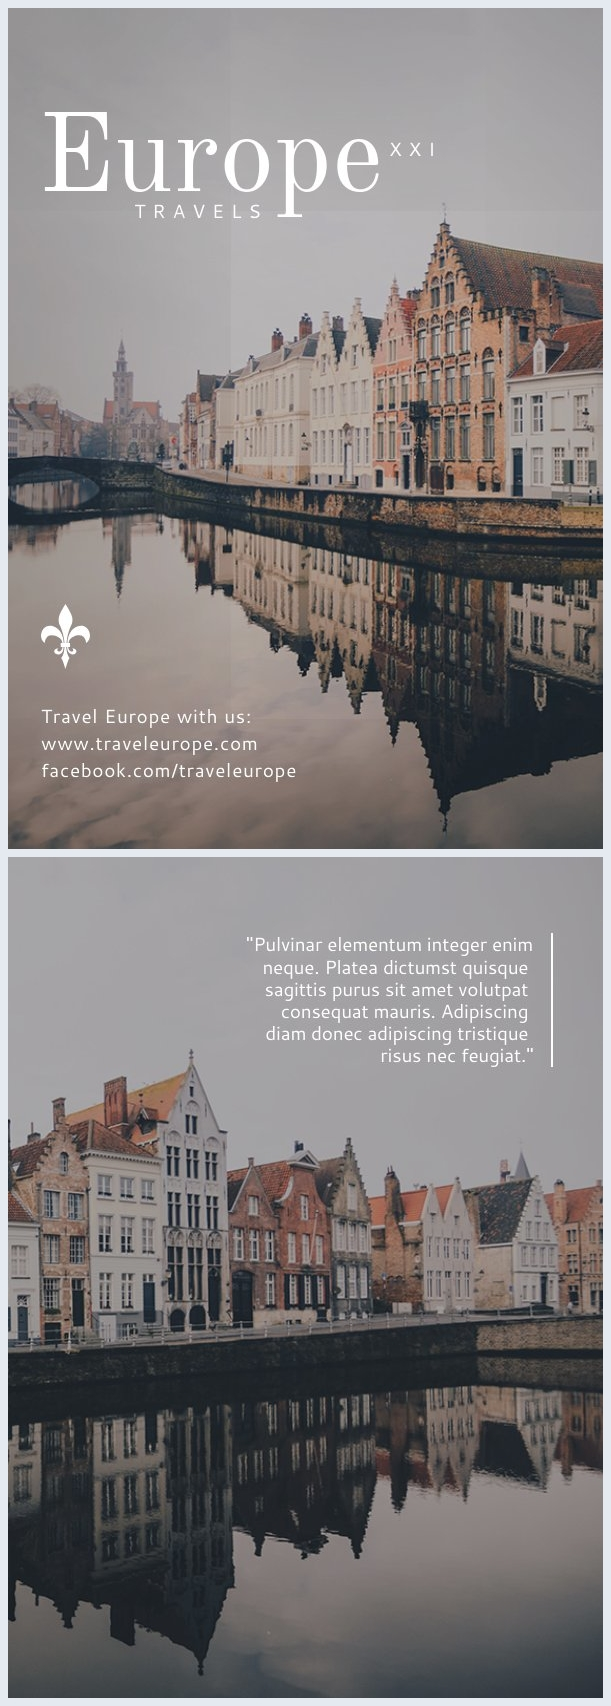 Beautiful City Travel Flyer Template & Design